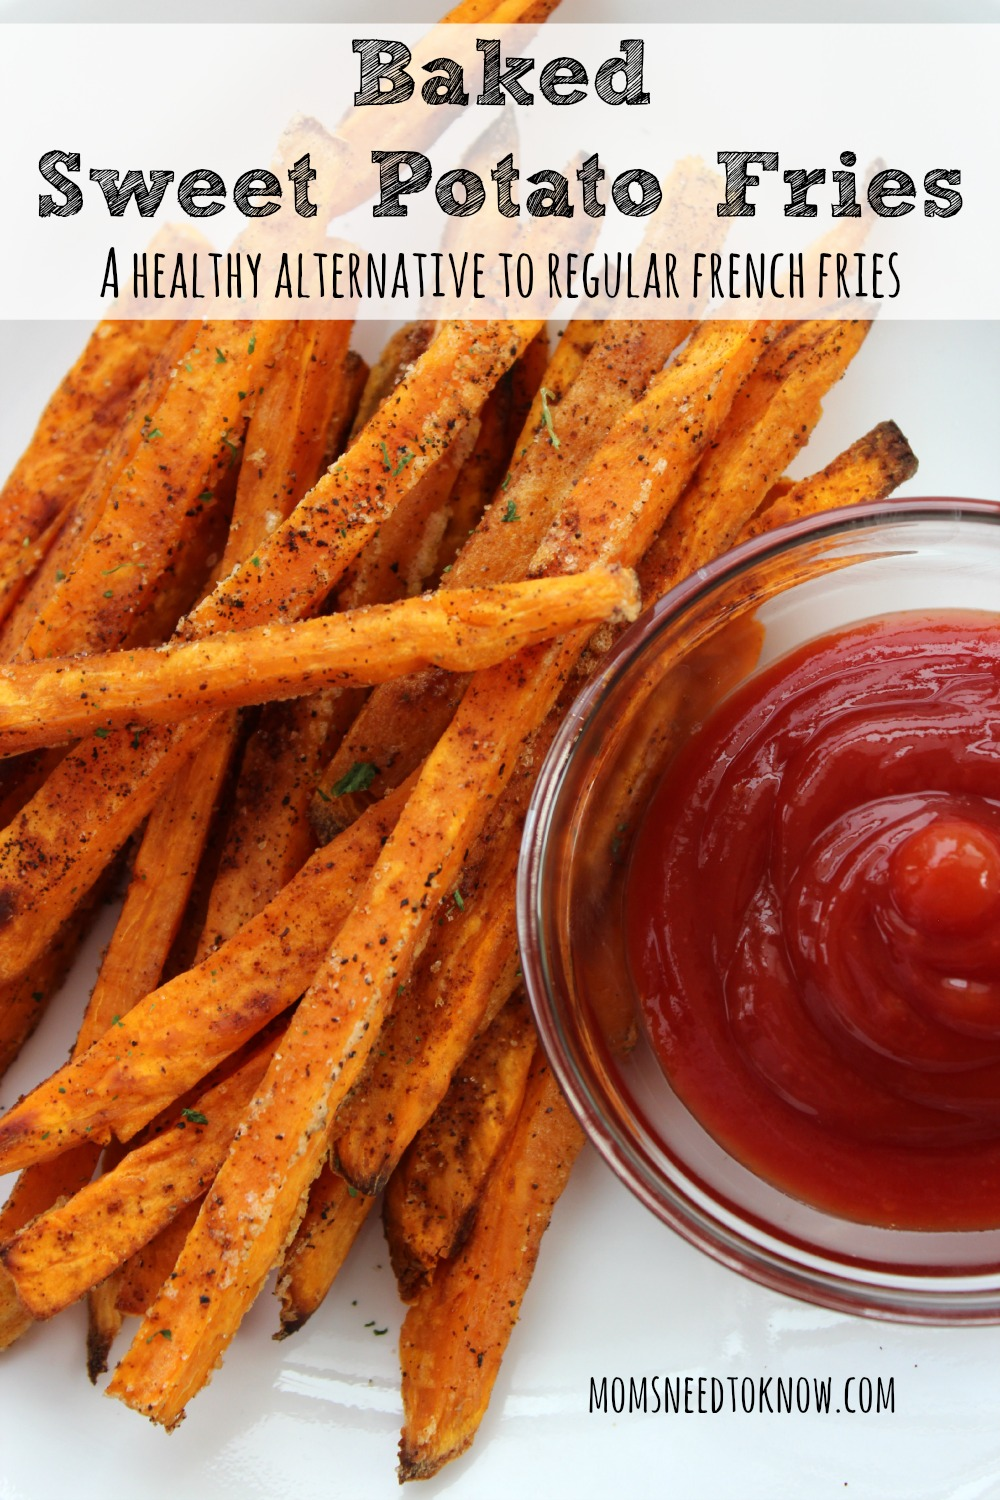 Baked Sweet Potato Fries Moms Need To Know